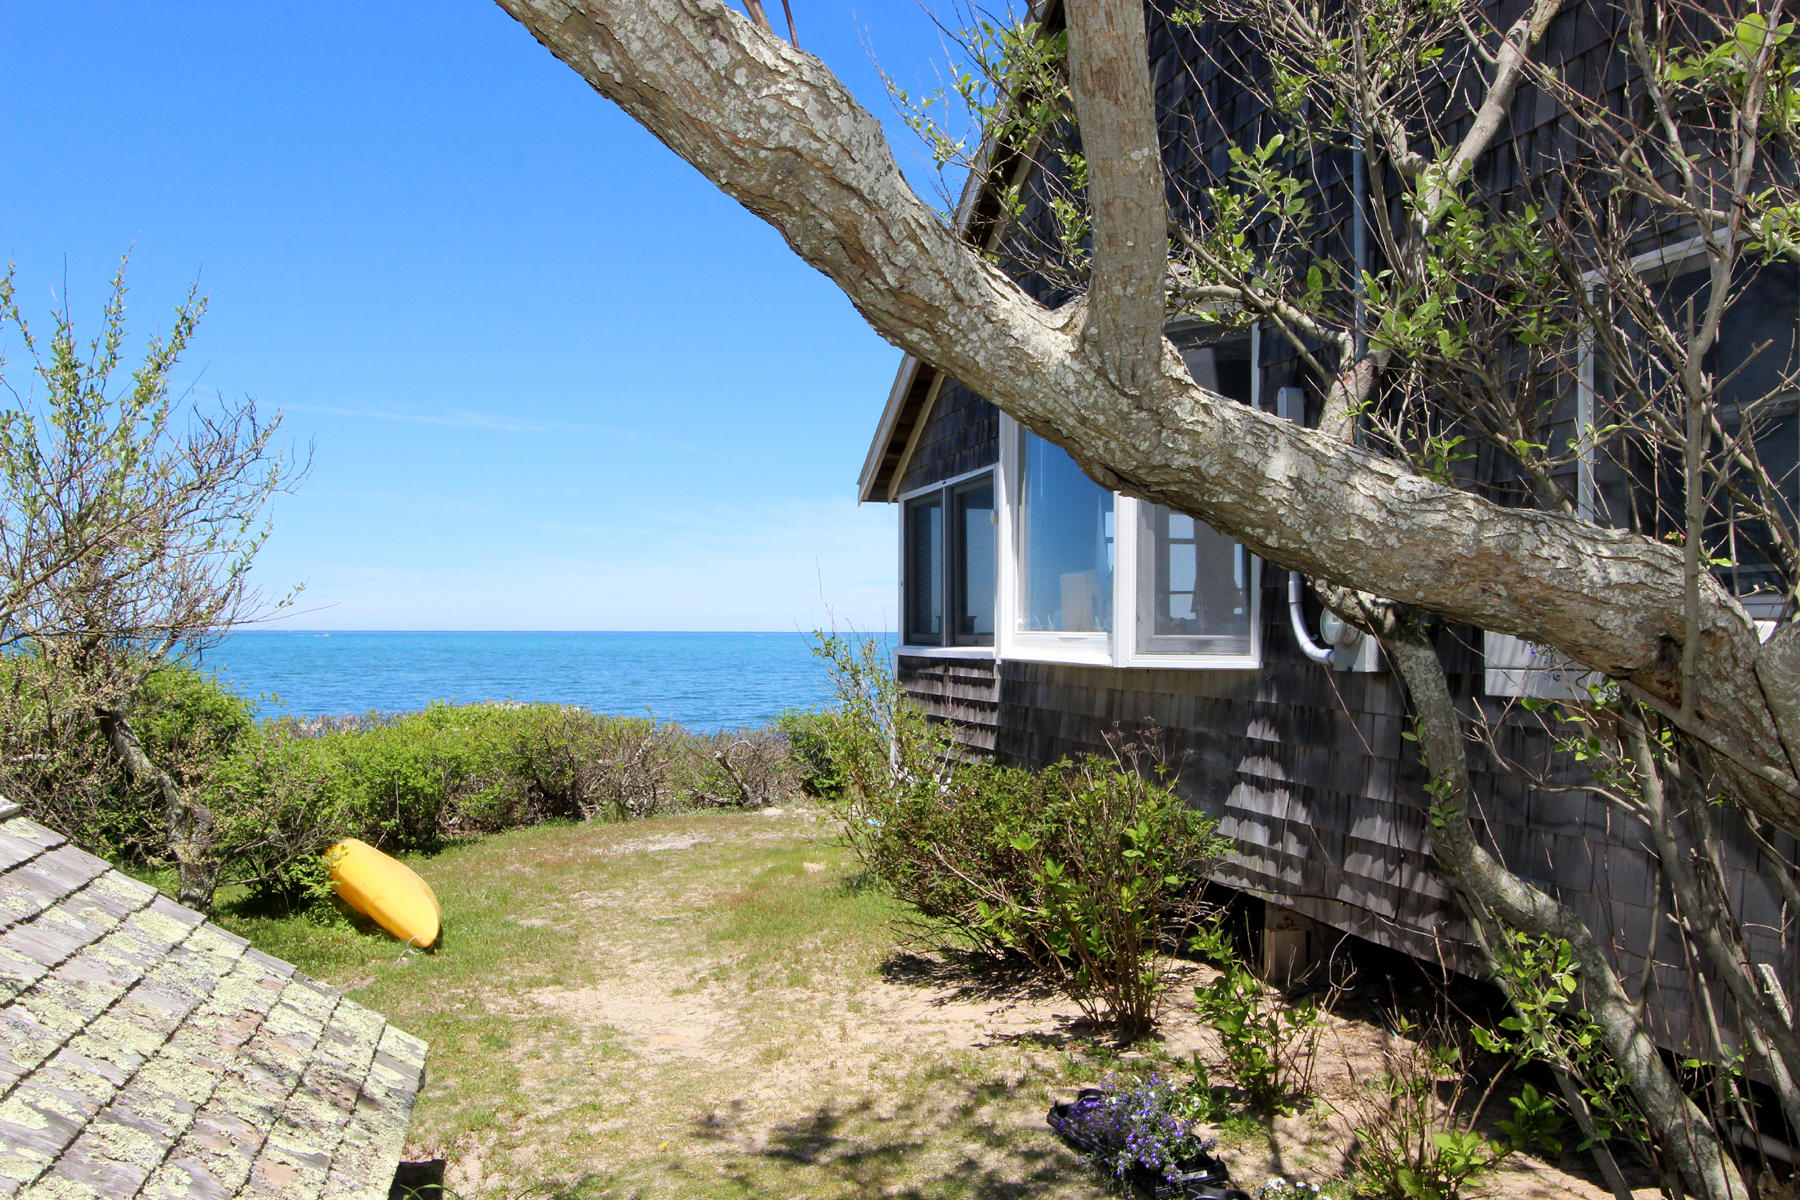 192 robbins hill road brewster ma 02631 property image 44